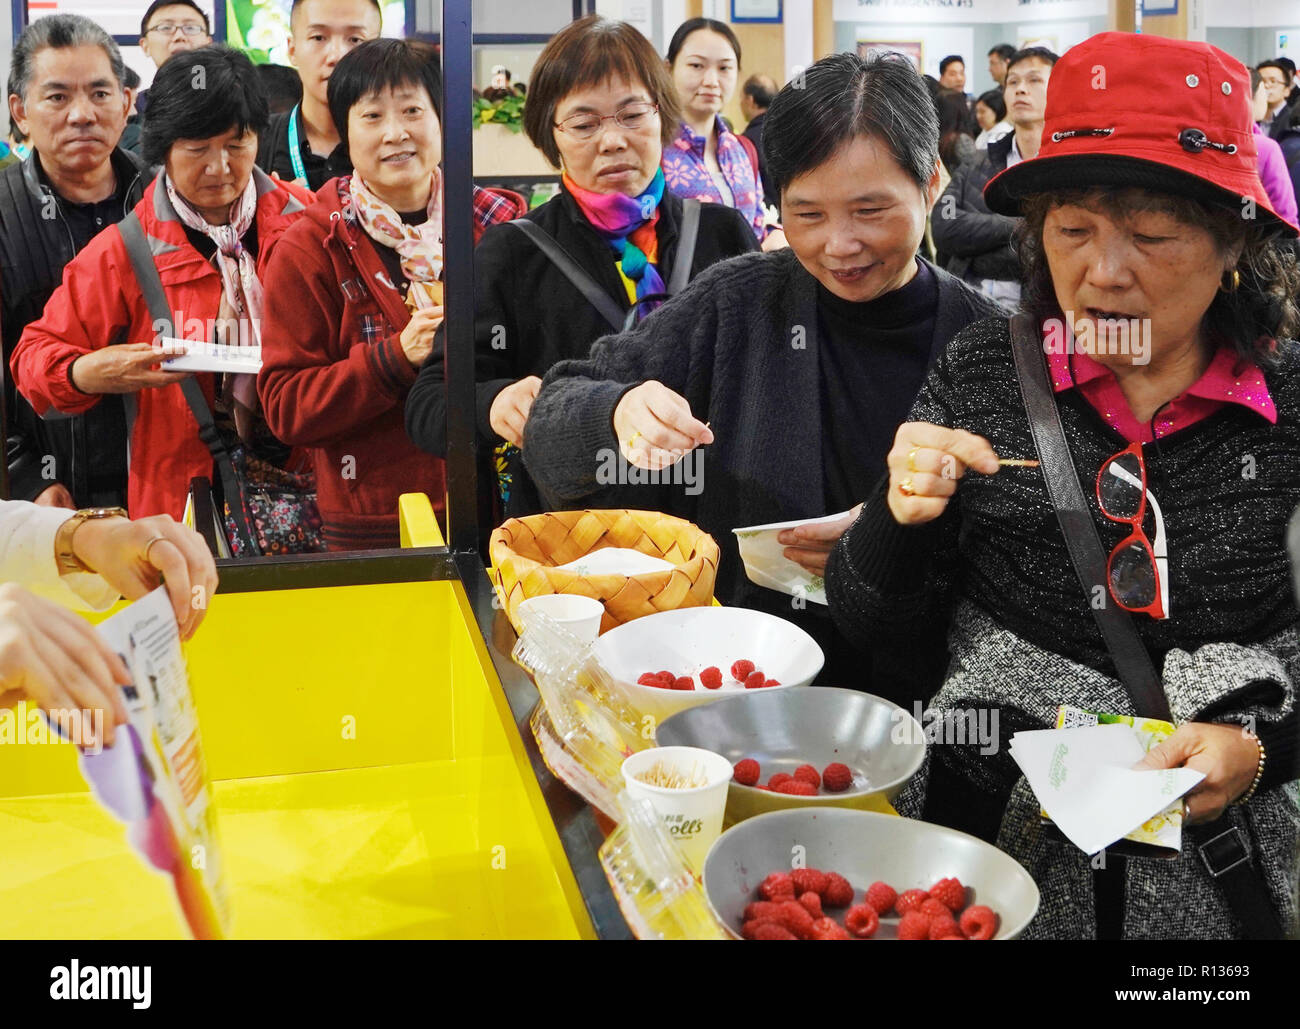 Shanghai, China. 9th Nov, 2018. Visitors line up to taste berry samplings during the first China International Import Expo (CIIE) in Shanghai, east China, Nov. 9, 2018. The CIIE is opened to group visitors from Nov. 9 to Nov. 10. Credit: Bi Xiaoyang/Xinhua/Alamy Live News - Stock Image